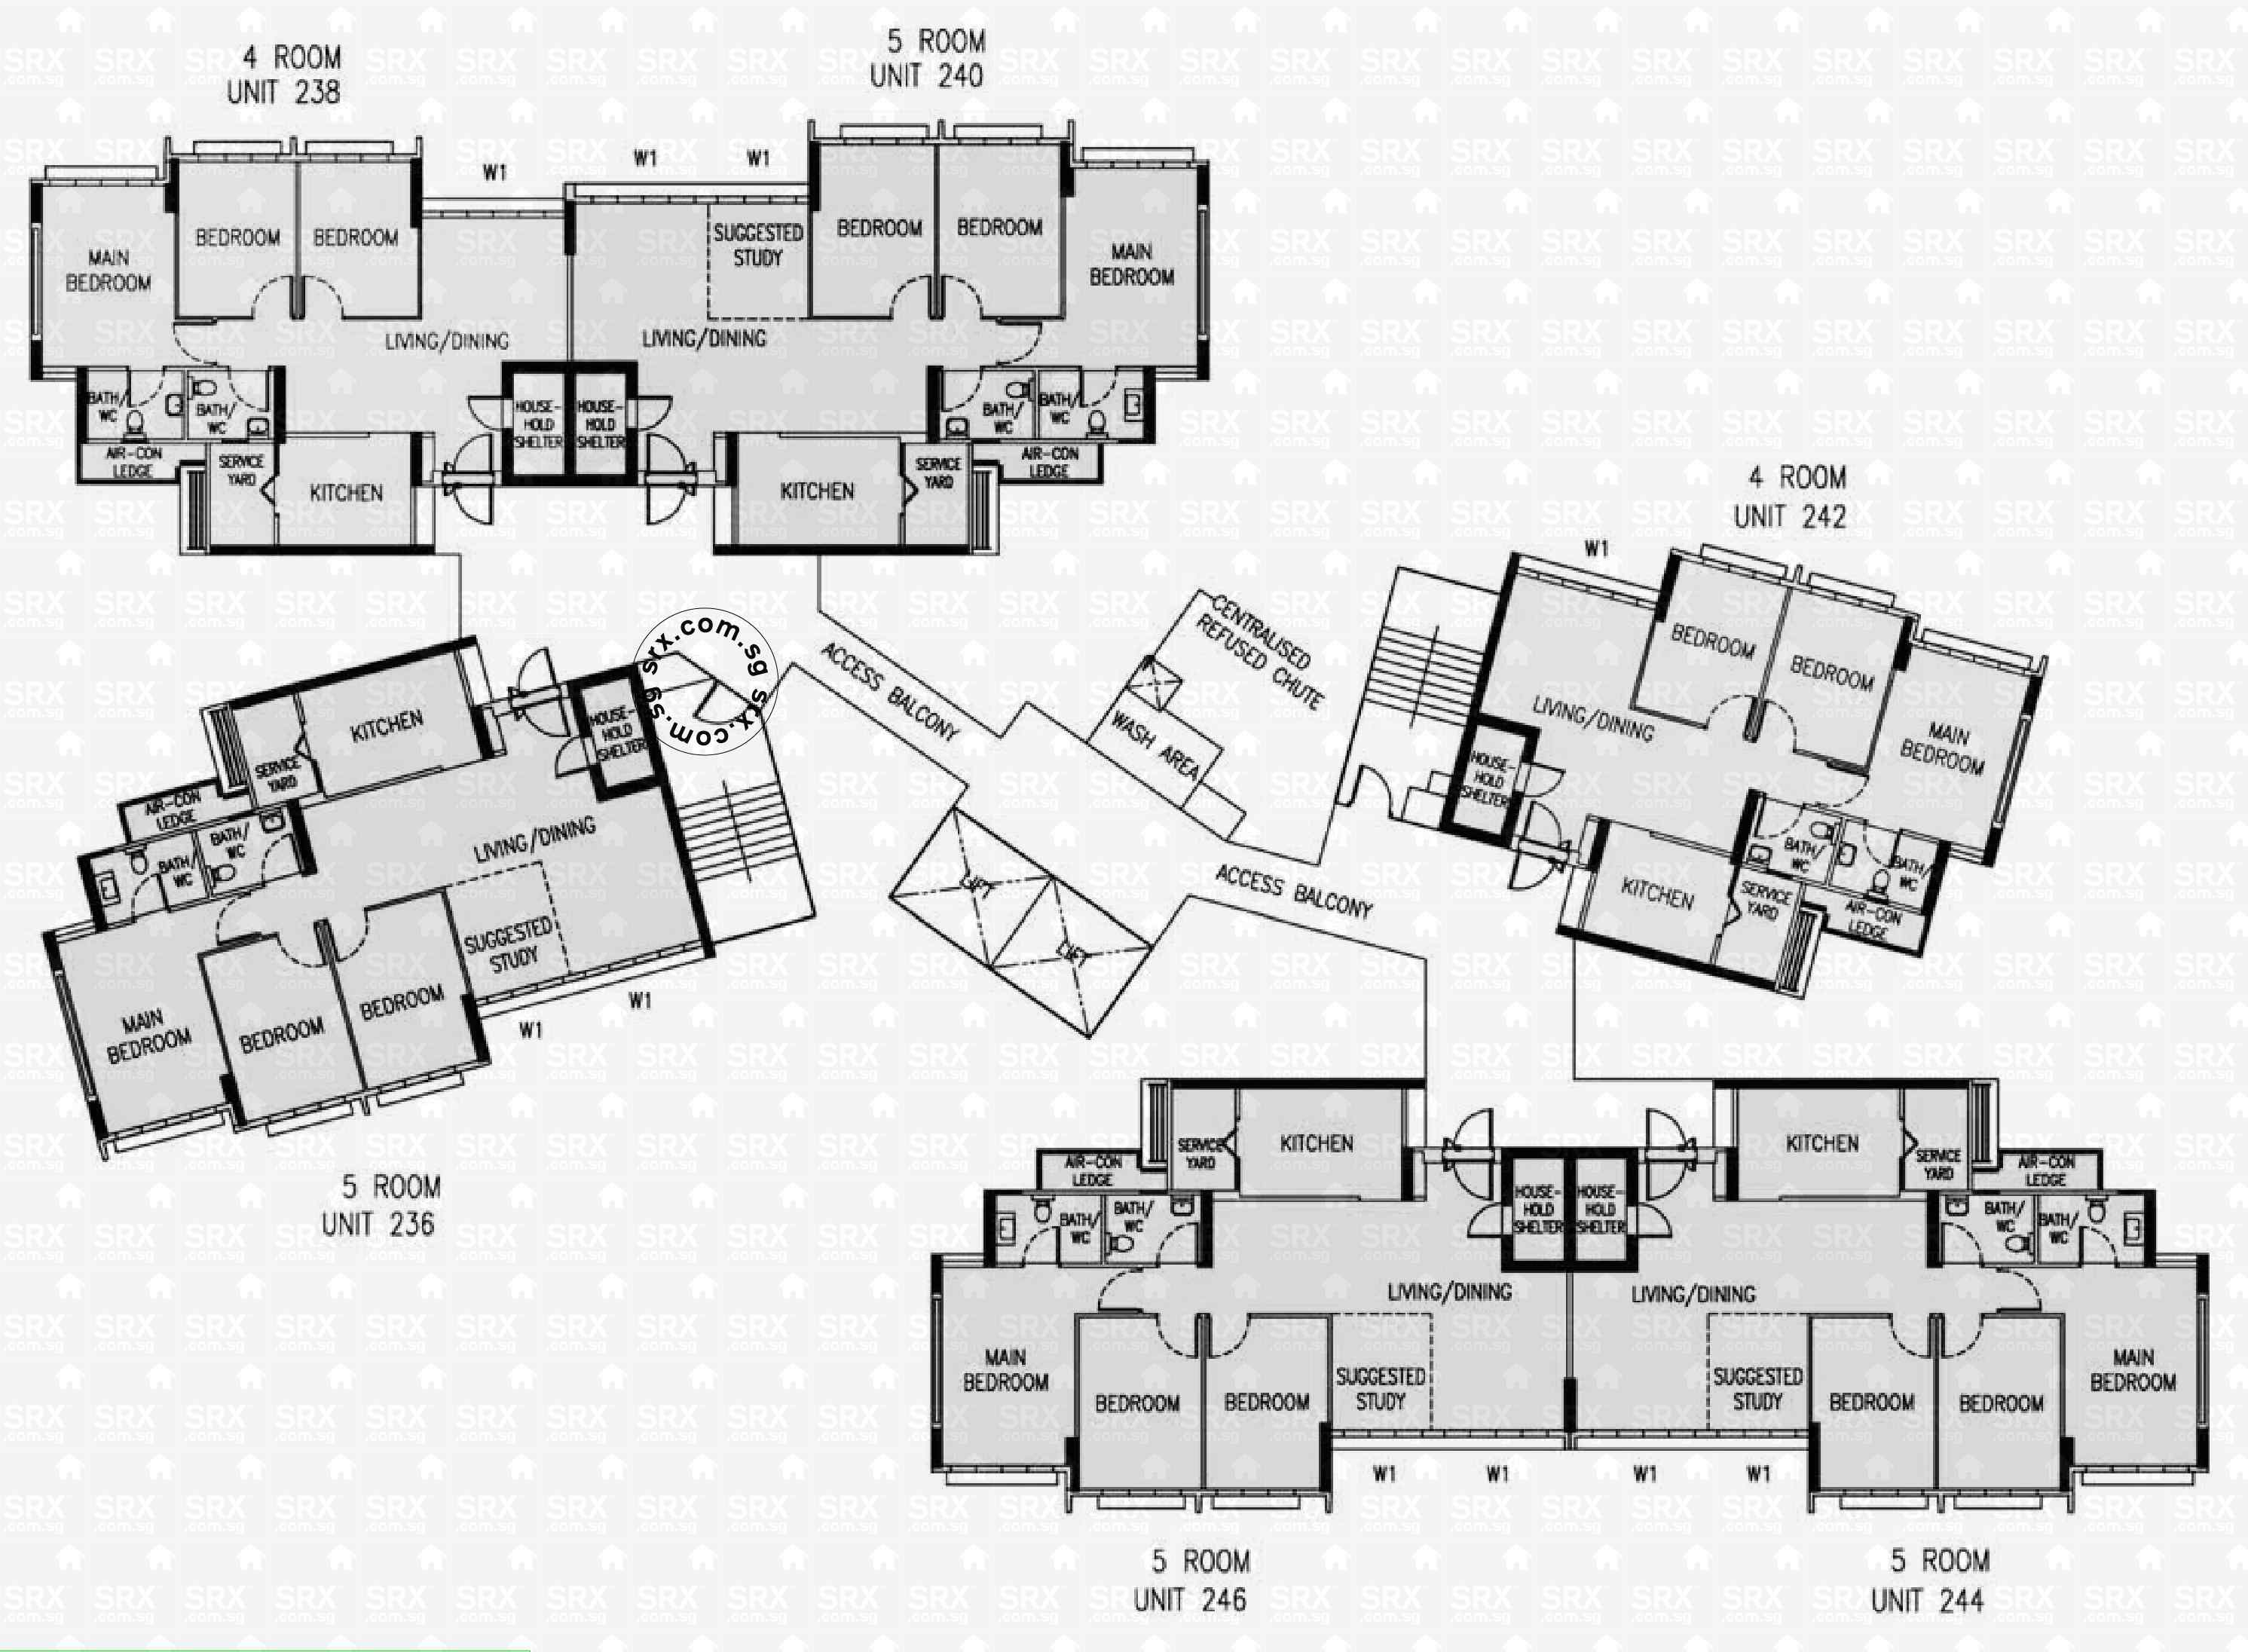 Floor plans for 163a rivervale crescent s 541163 hdb for 1077 marinaside crescent floor plan